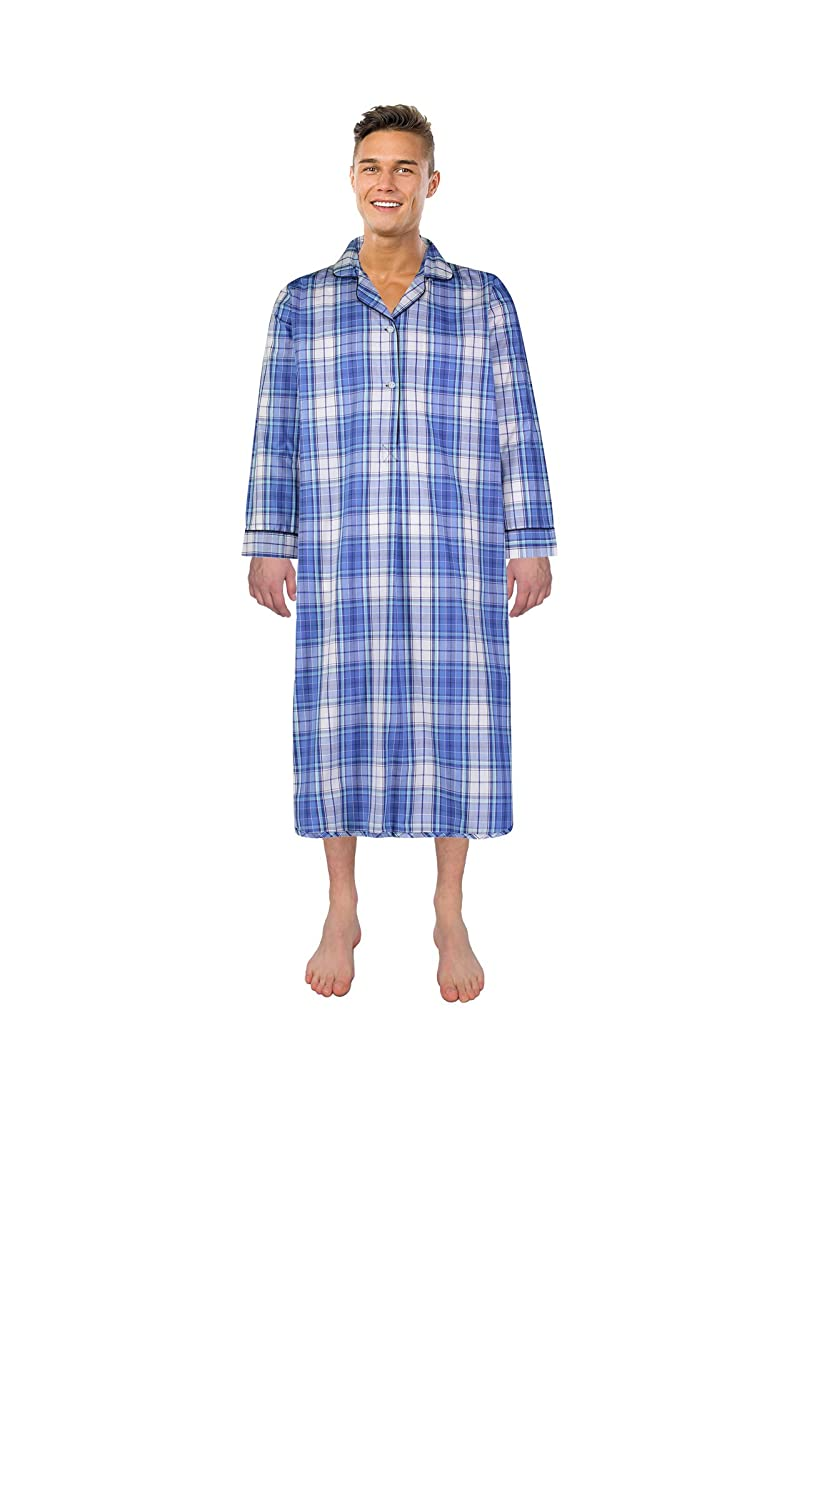 Bill Baileys Sleepwear Mens Broadcloth Woven Nightshirt Sleep Shirt 2702